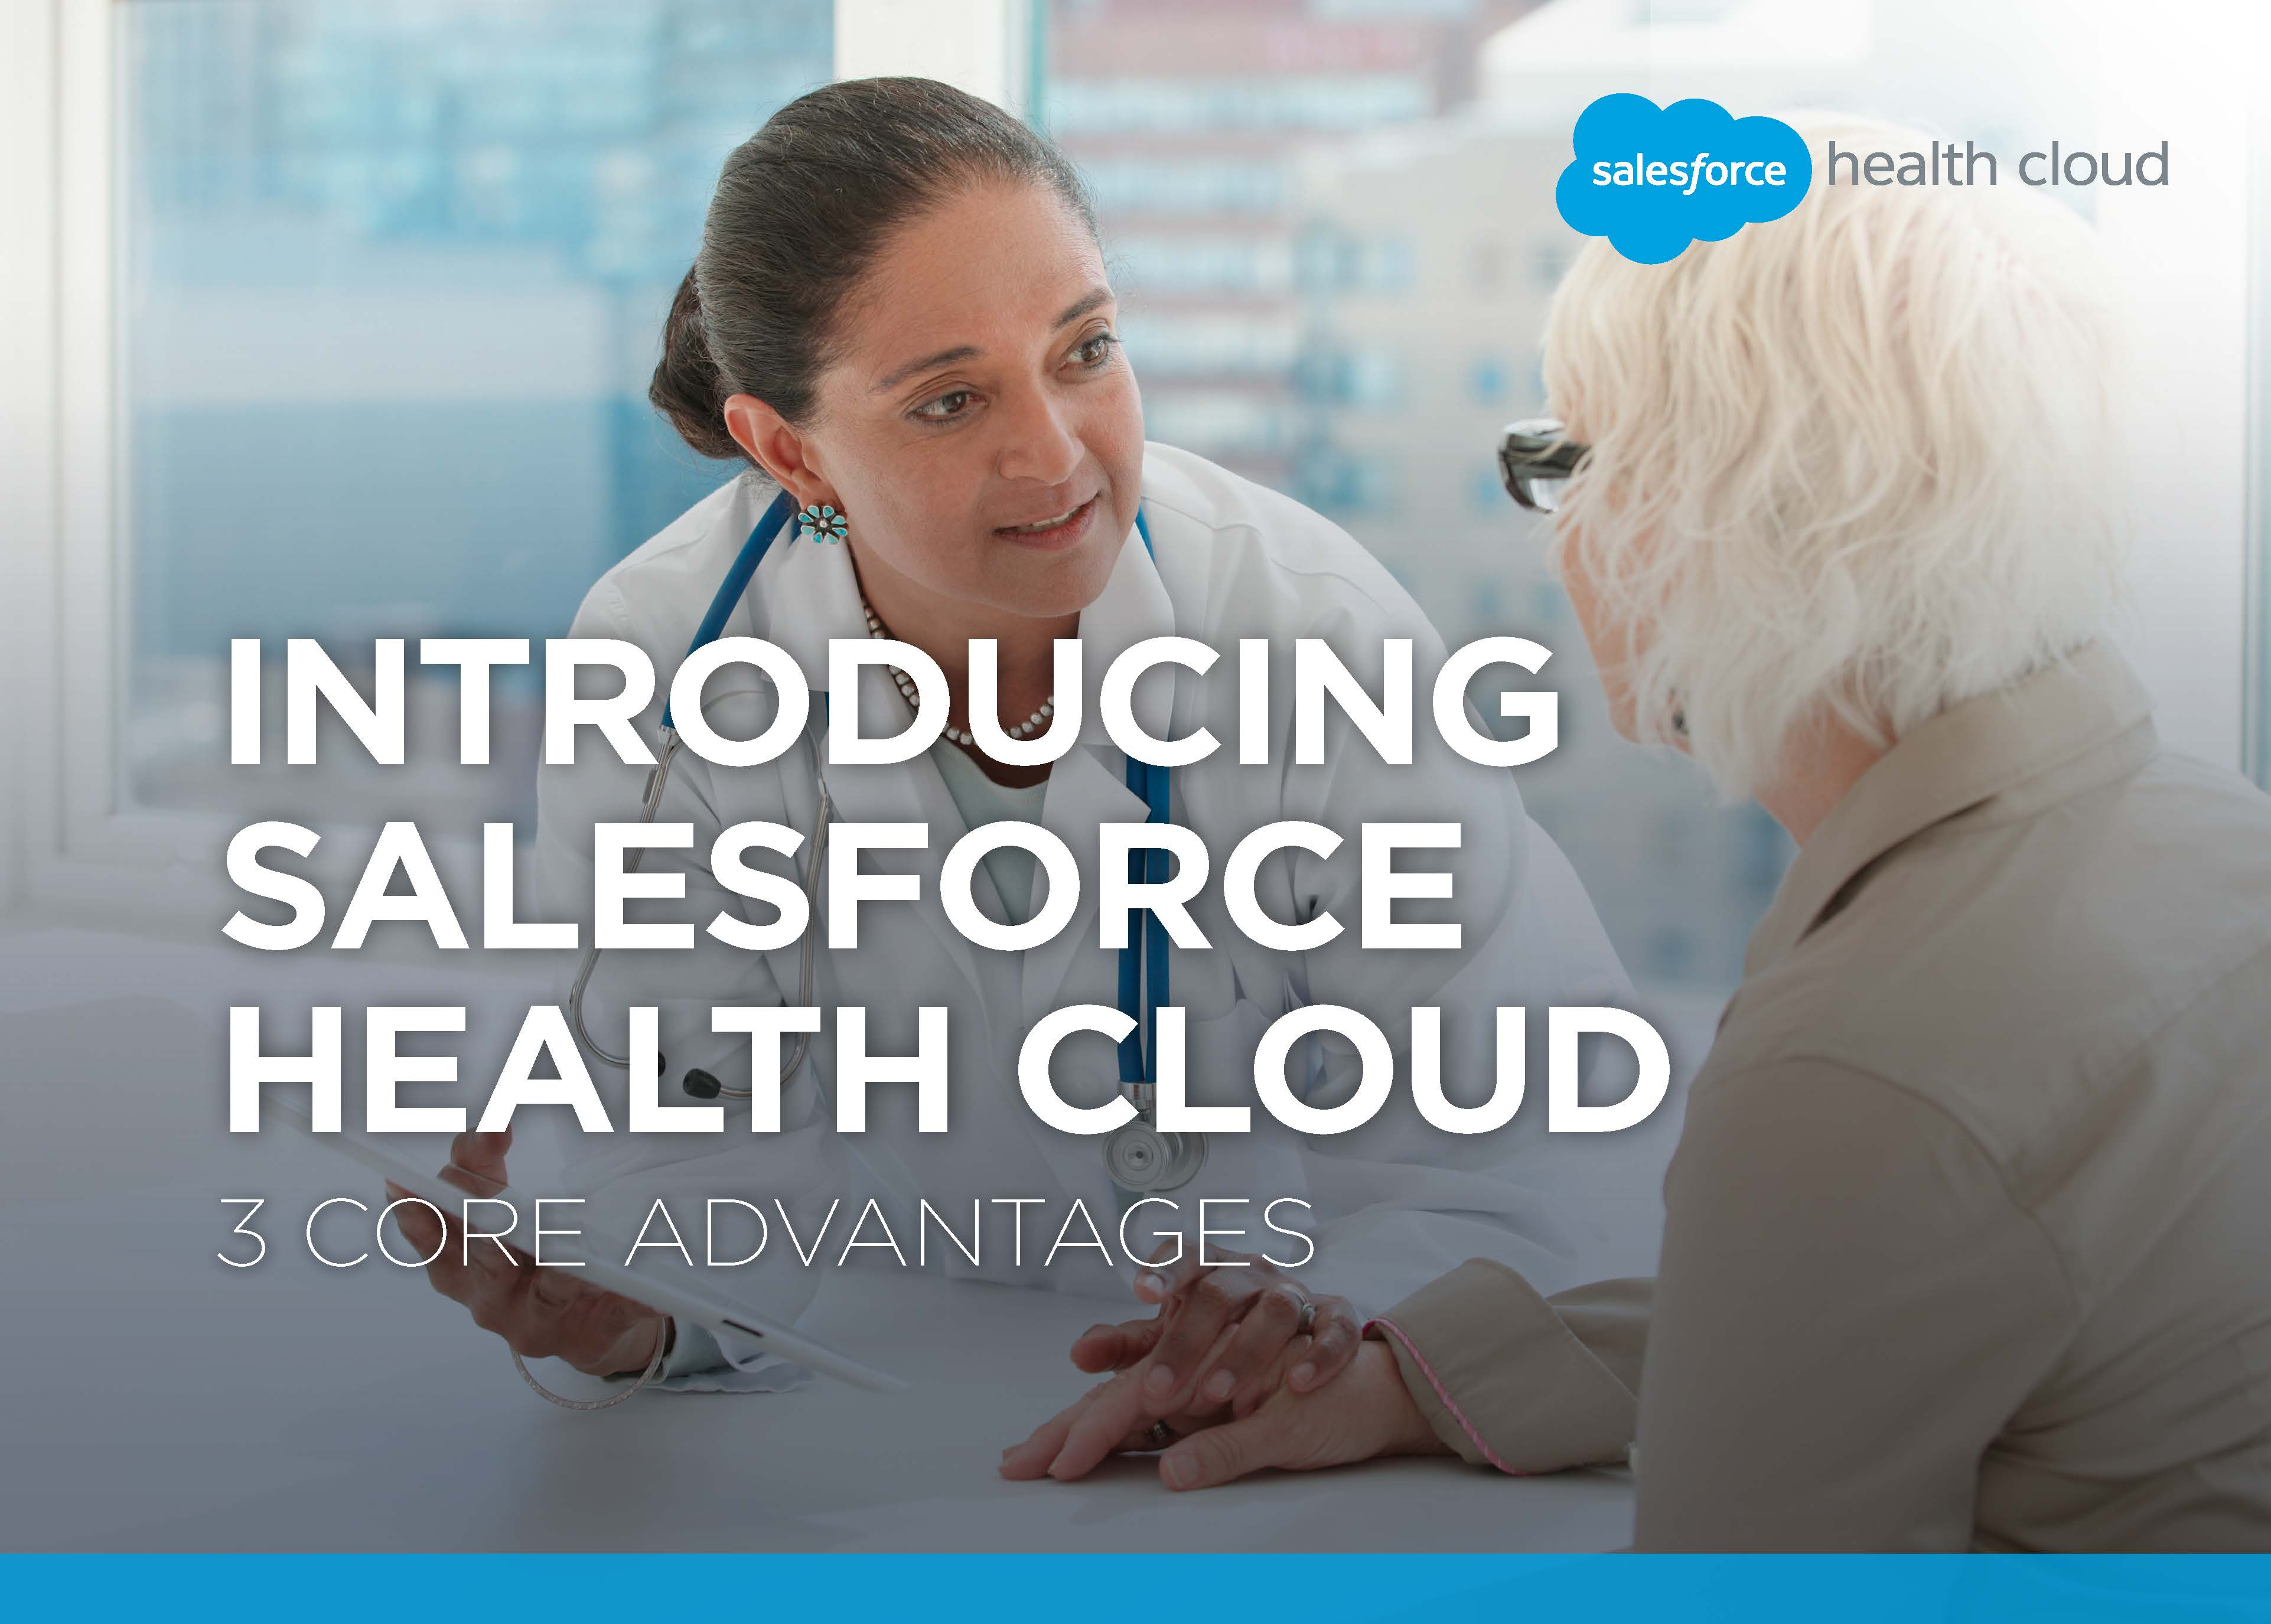 Introducing Salesforce Healthcloud 3 core advantages